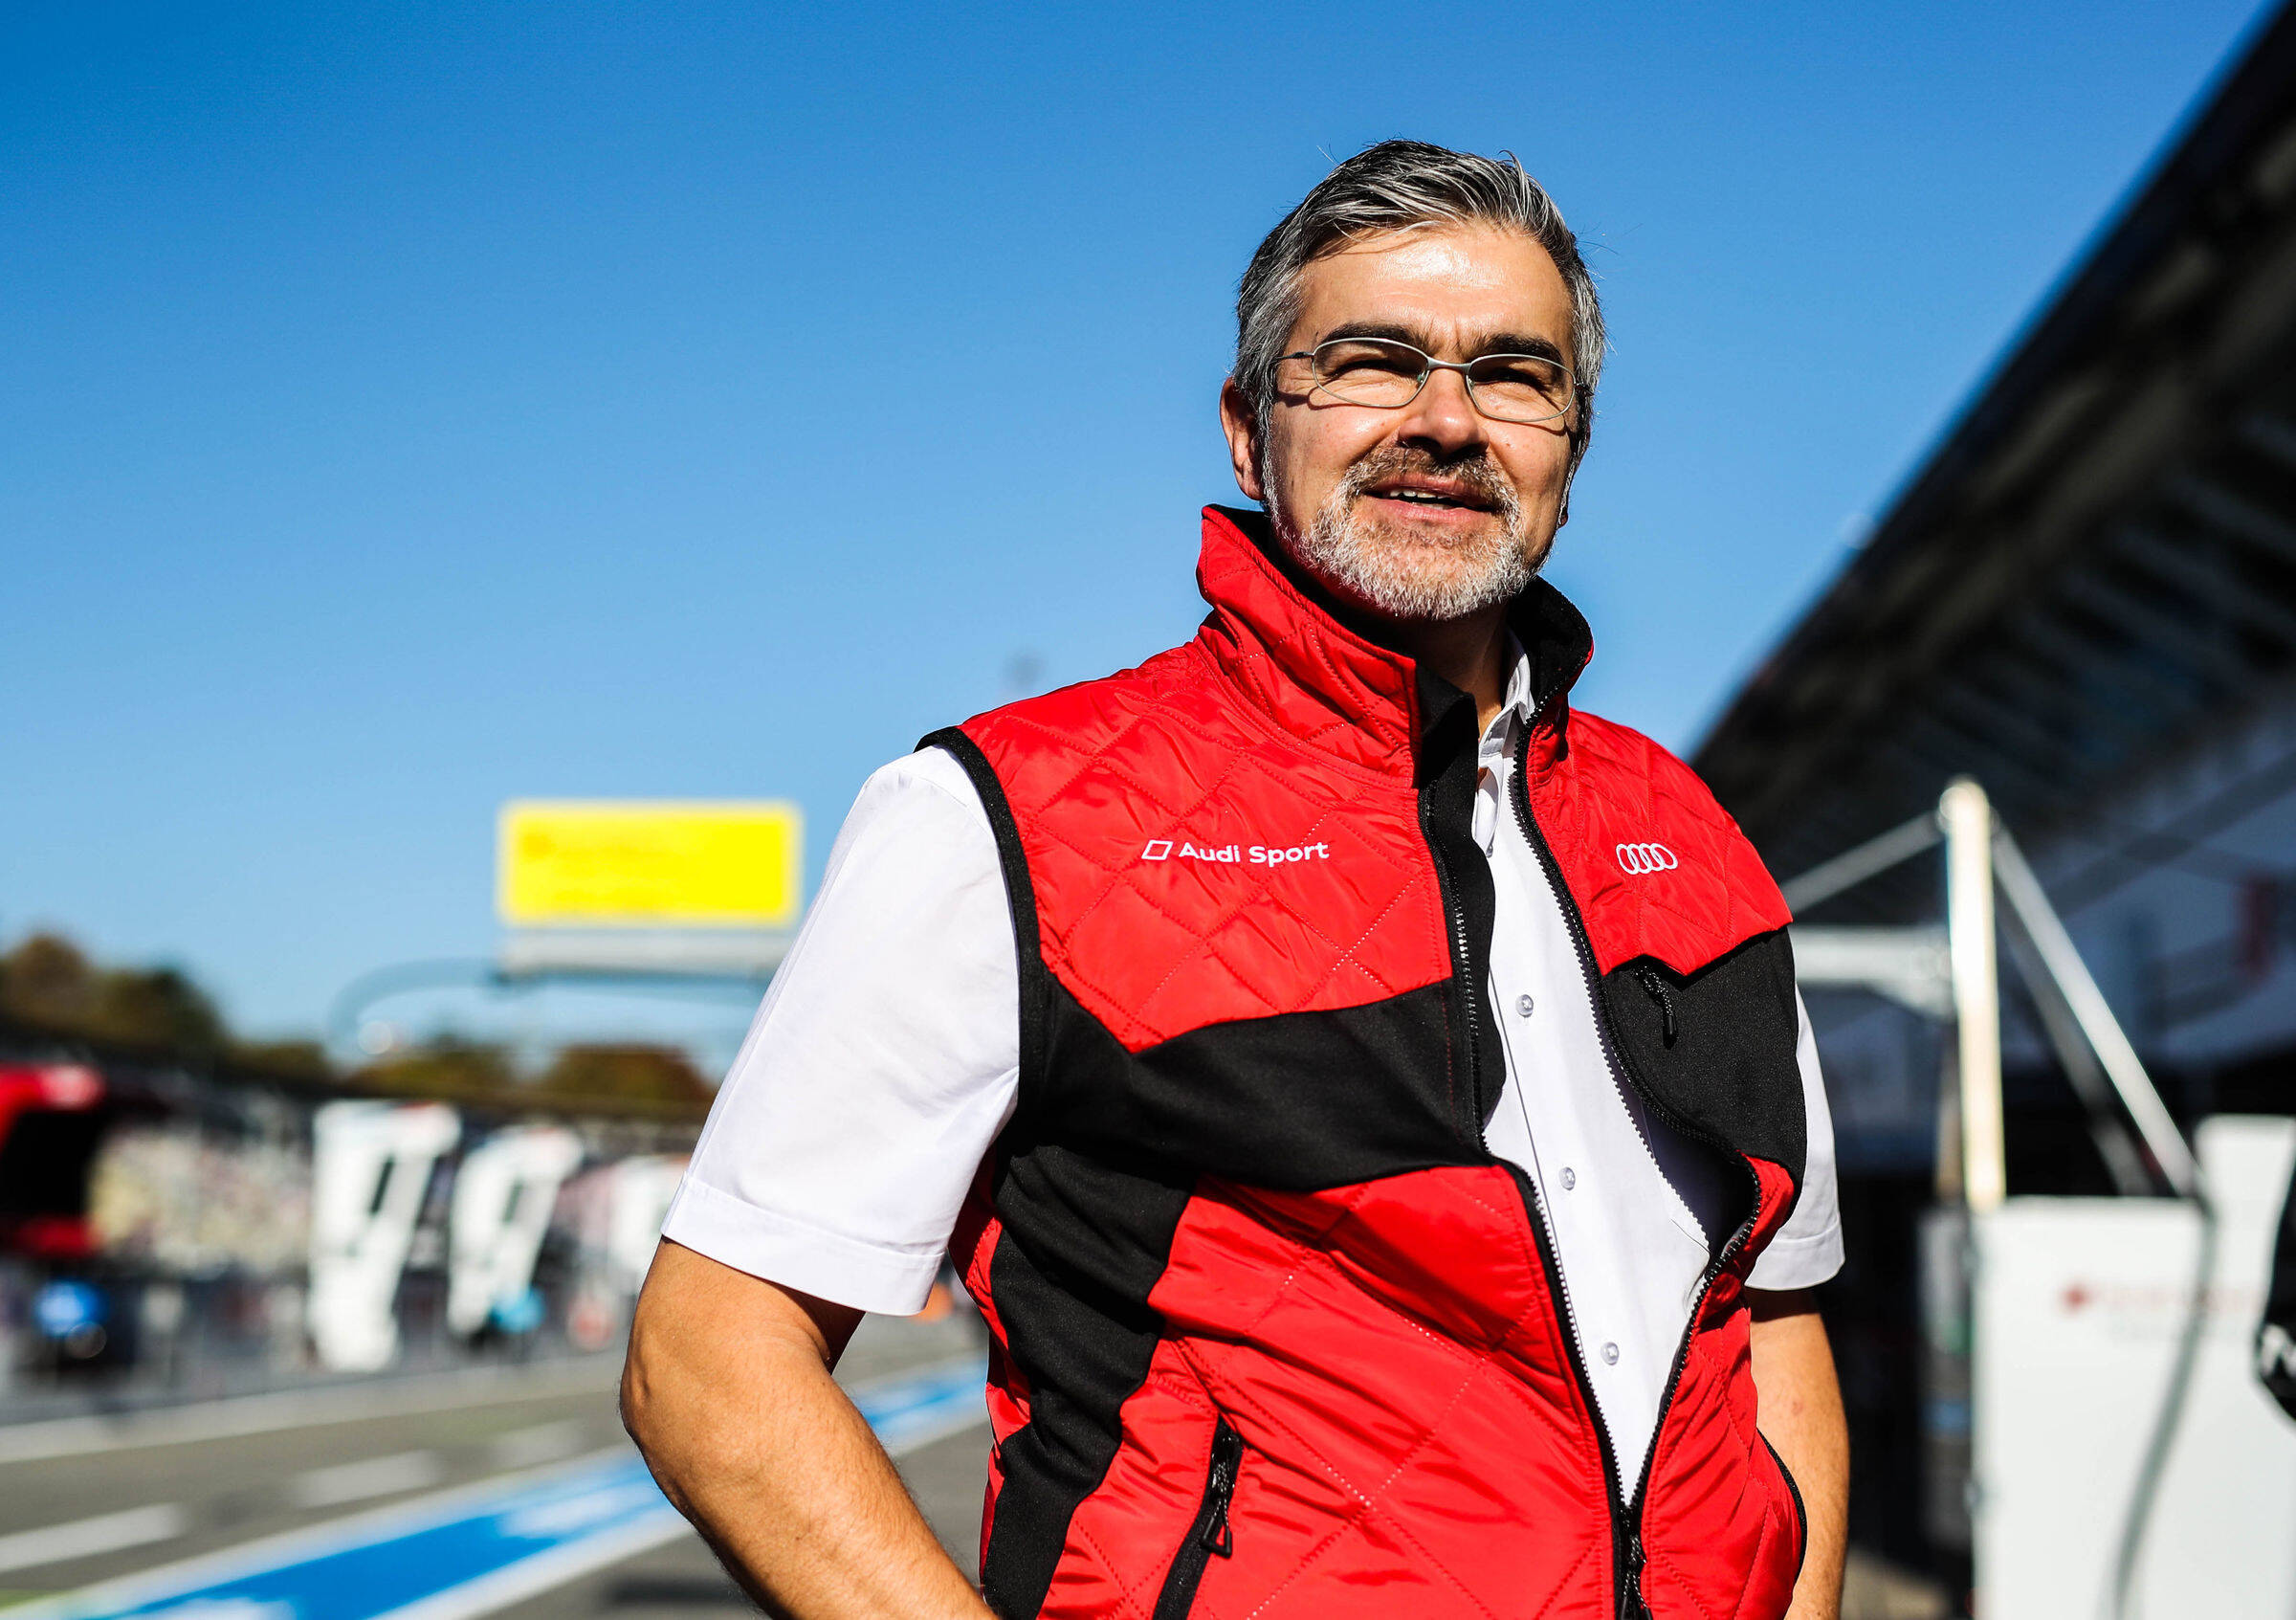 Turbo DTM 2019: The team is up and running! ABT Sportsline